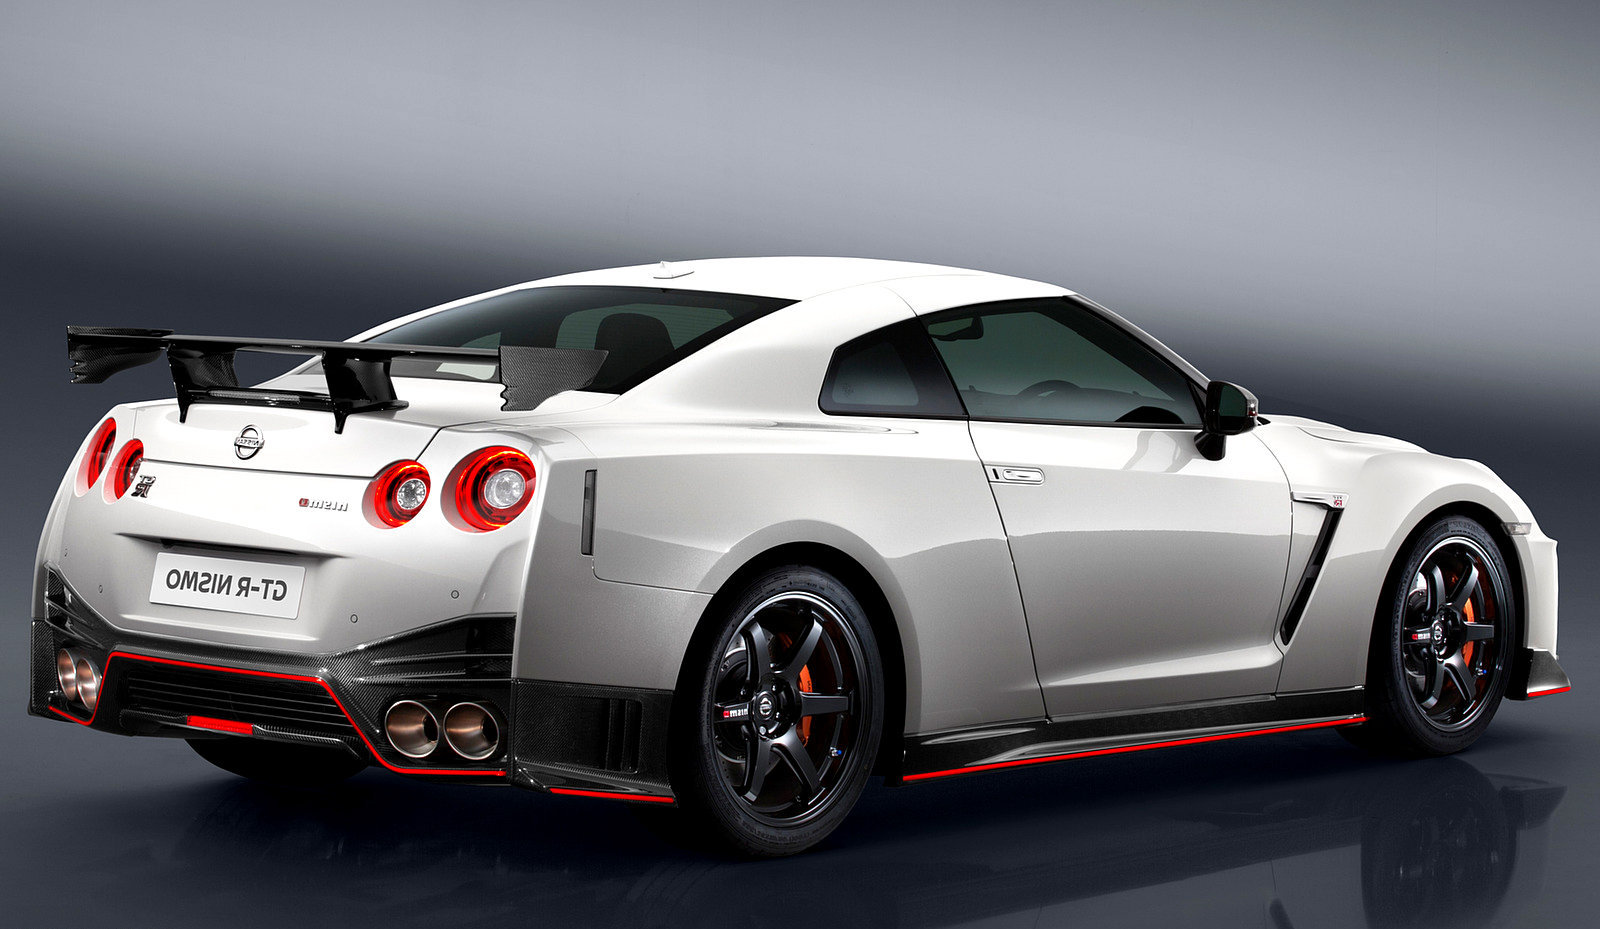 Attractive 2017 Nissan GT R NISMO White Rear Wallpaper